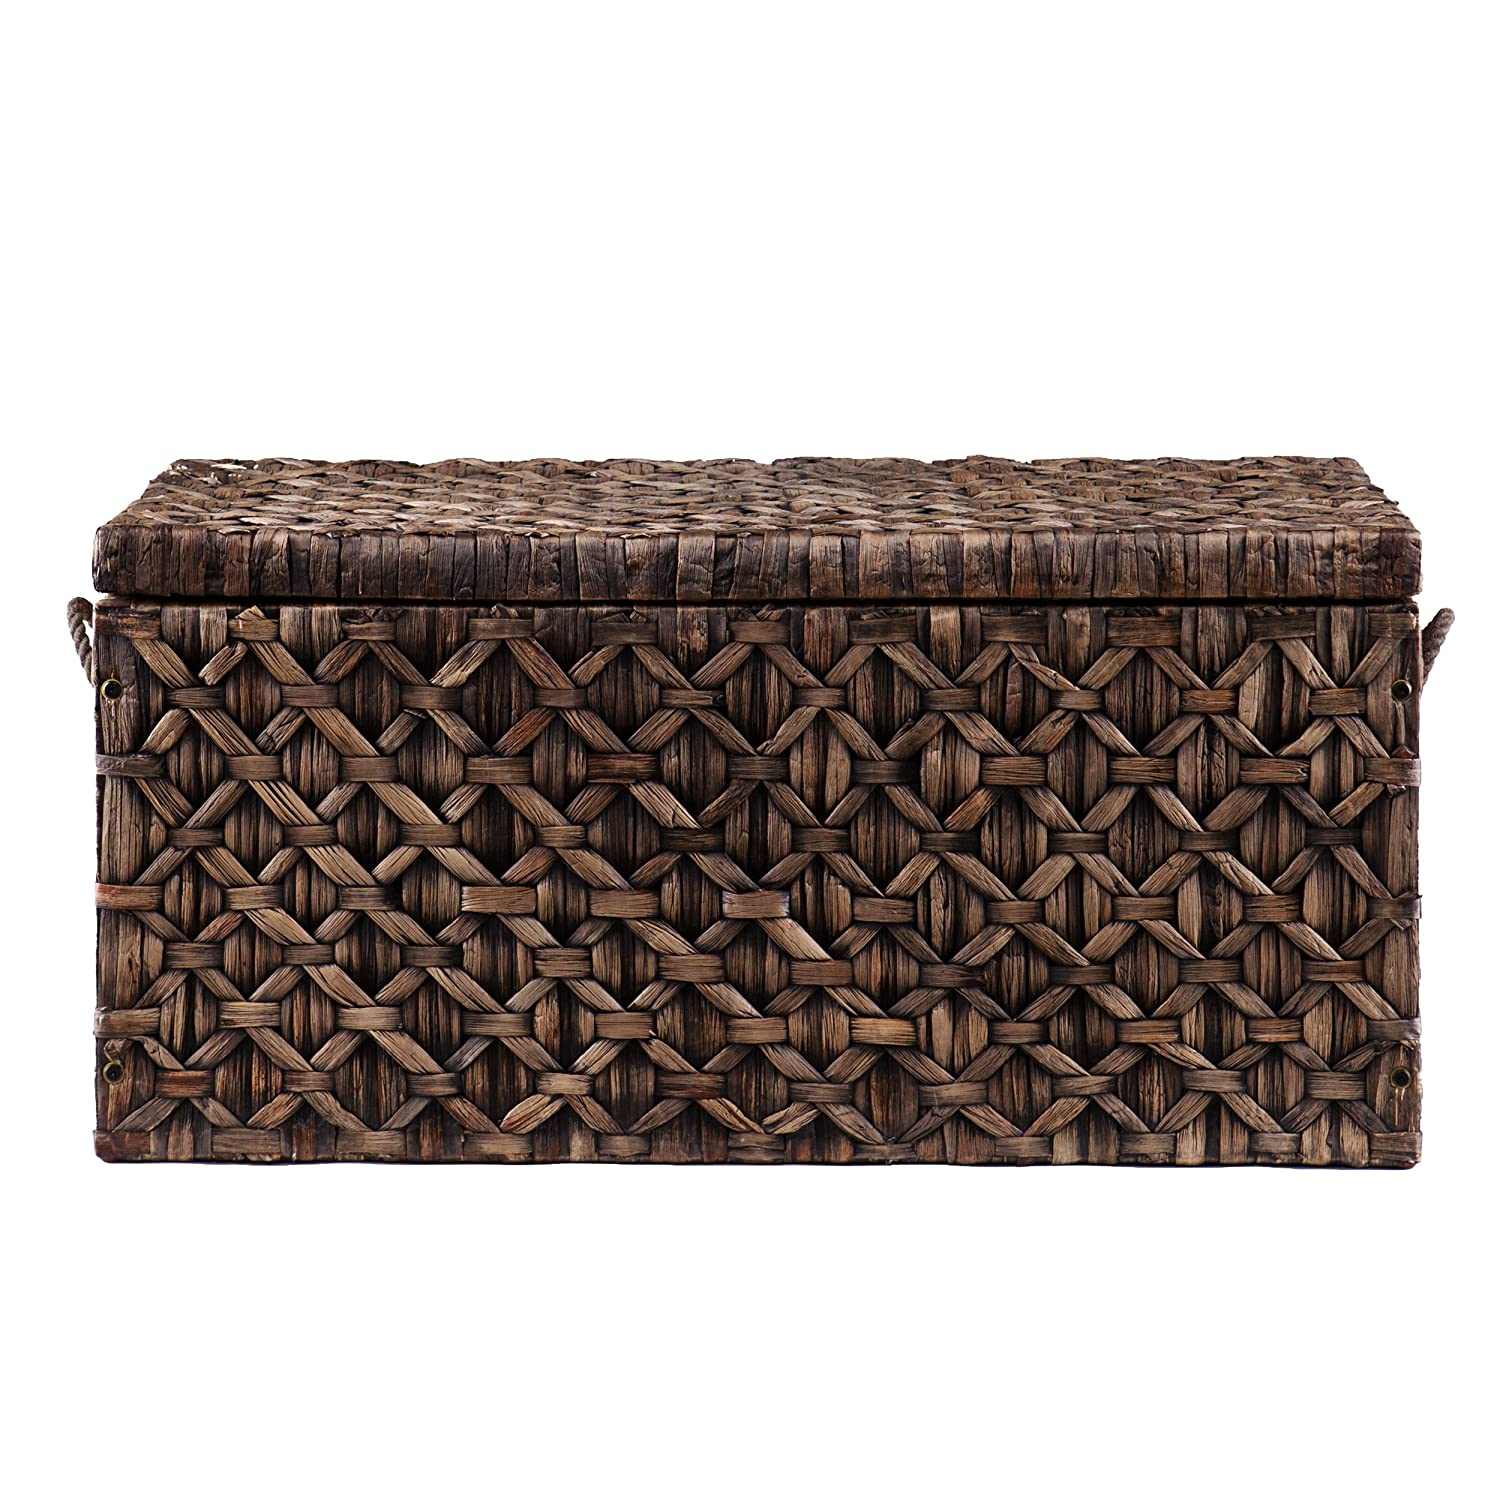 Seagrass coffee table trunk - Southern Enterprises Water Hyacinth Diamond Weave Storage Trunk Blackwashed Finish